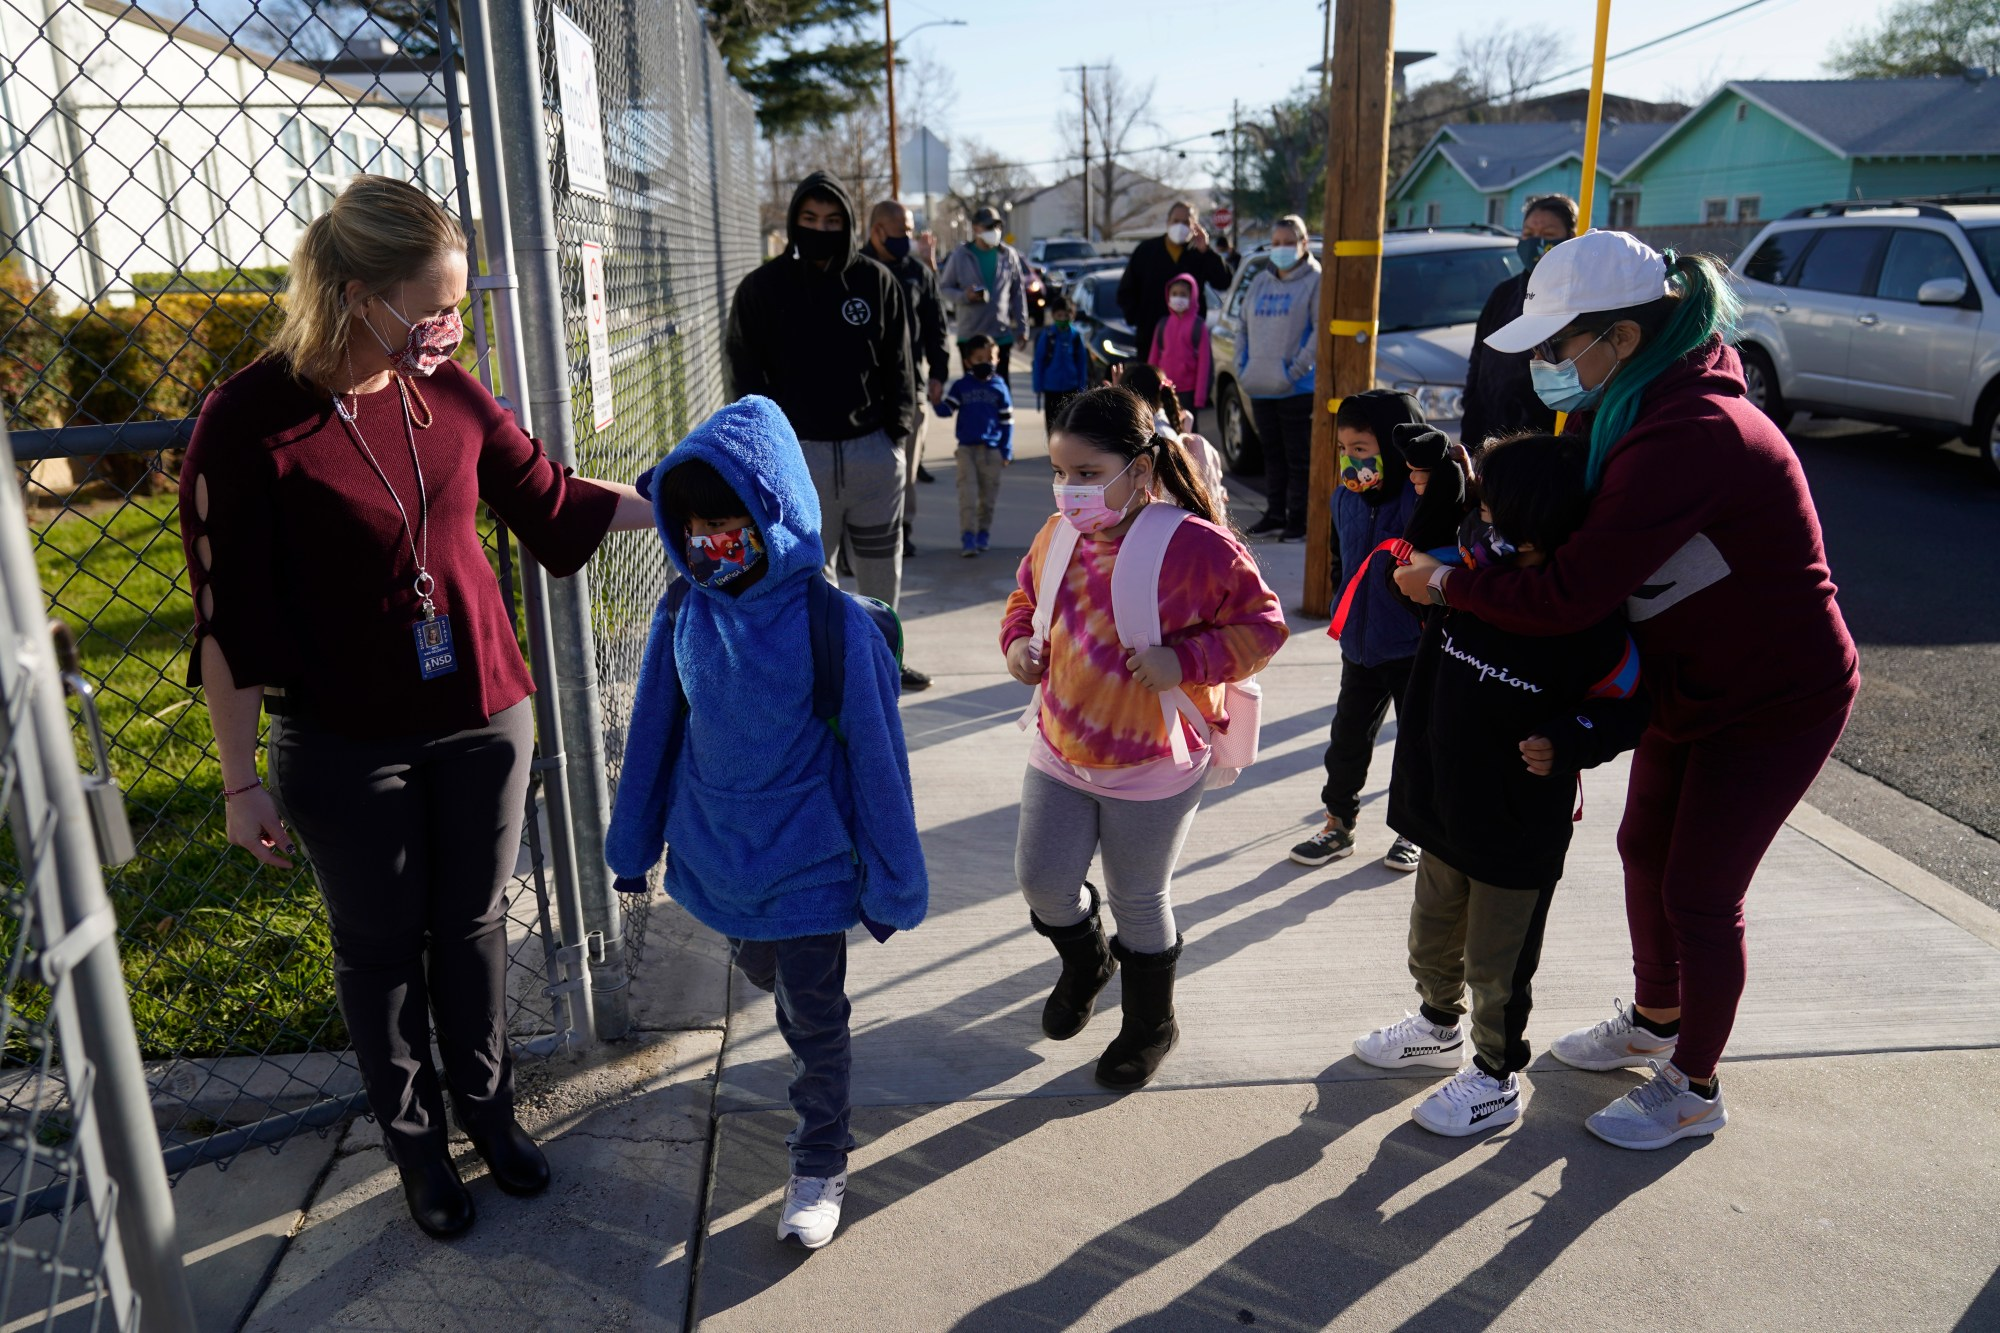 Assistant Principal Janette Van Gelderen, left, welcomes students at Newhall Elementary School in Santa Clarita on Feb. 25, 2021. Elementary school students returned to school this week in the Newhall School District. (Marcio Jose Sanchez / Associated Press)